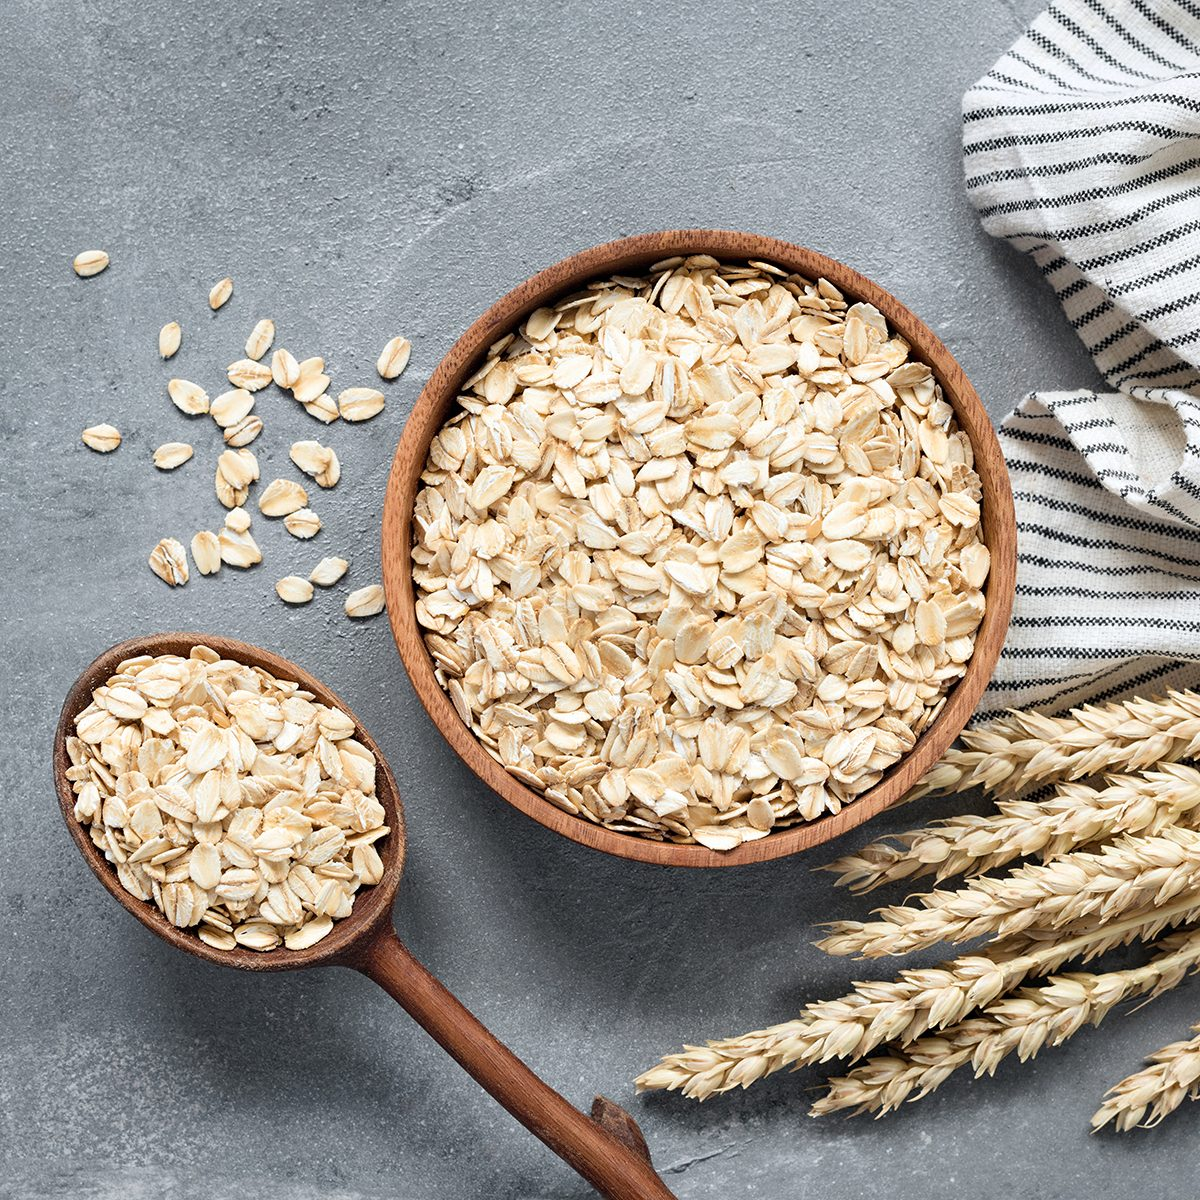 Oats, rolled oats or oat flakes in wooden bowl and wooden spoon. Top view. Healthy grains, low carb diet food